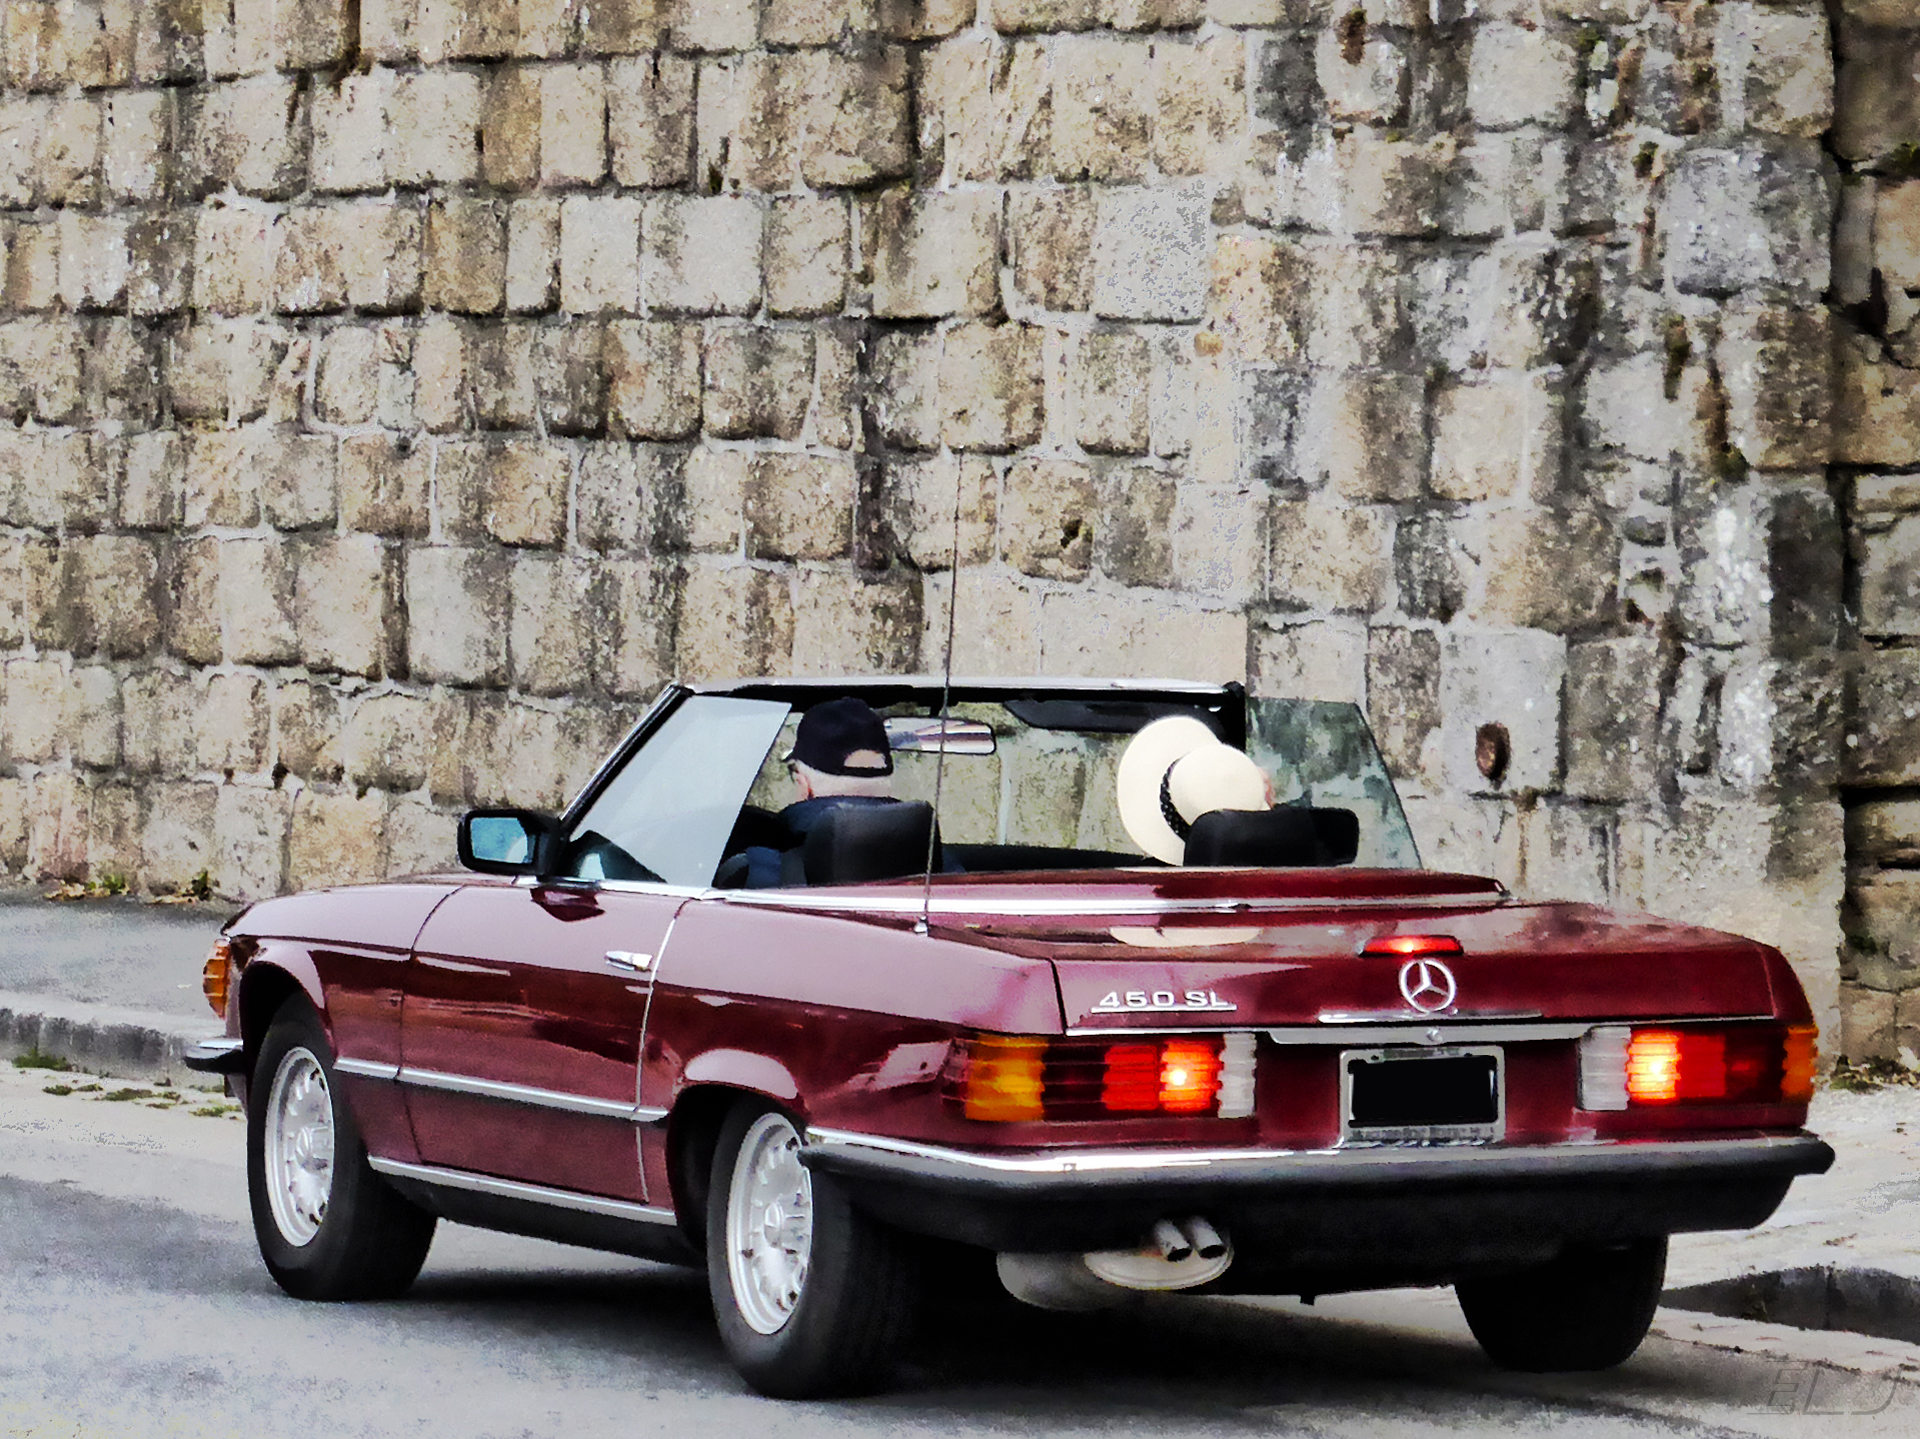 Mercedes-Benz 450 SL - rear road - AVAM - 2018 - photo by ELJ